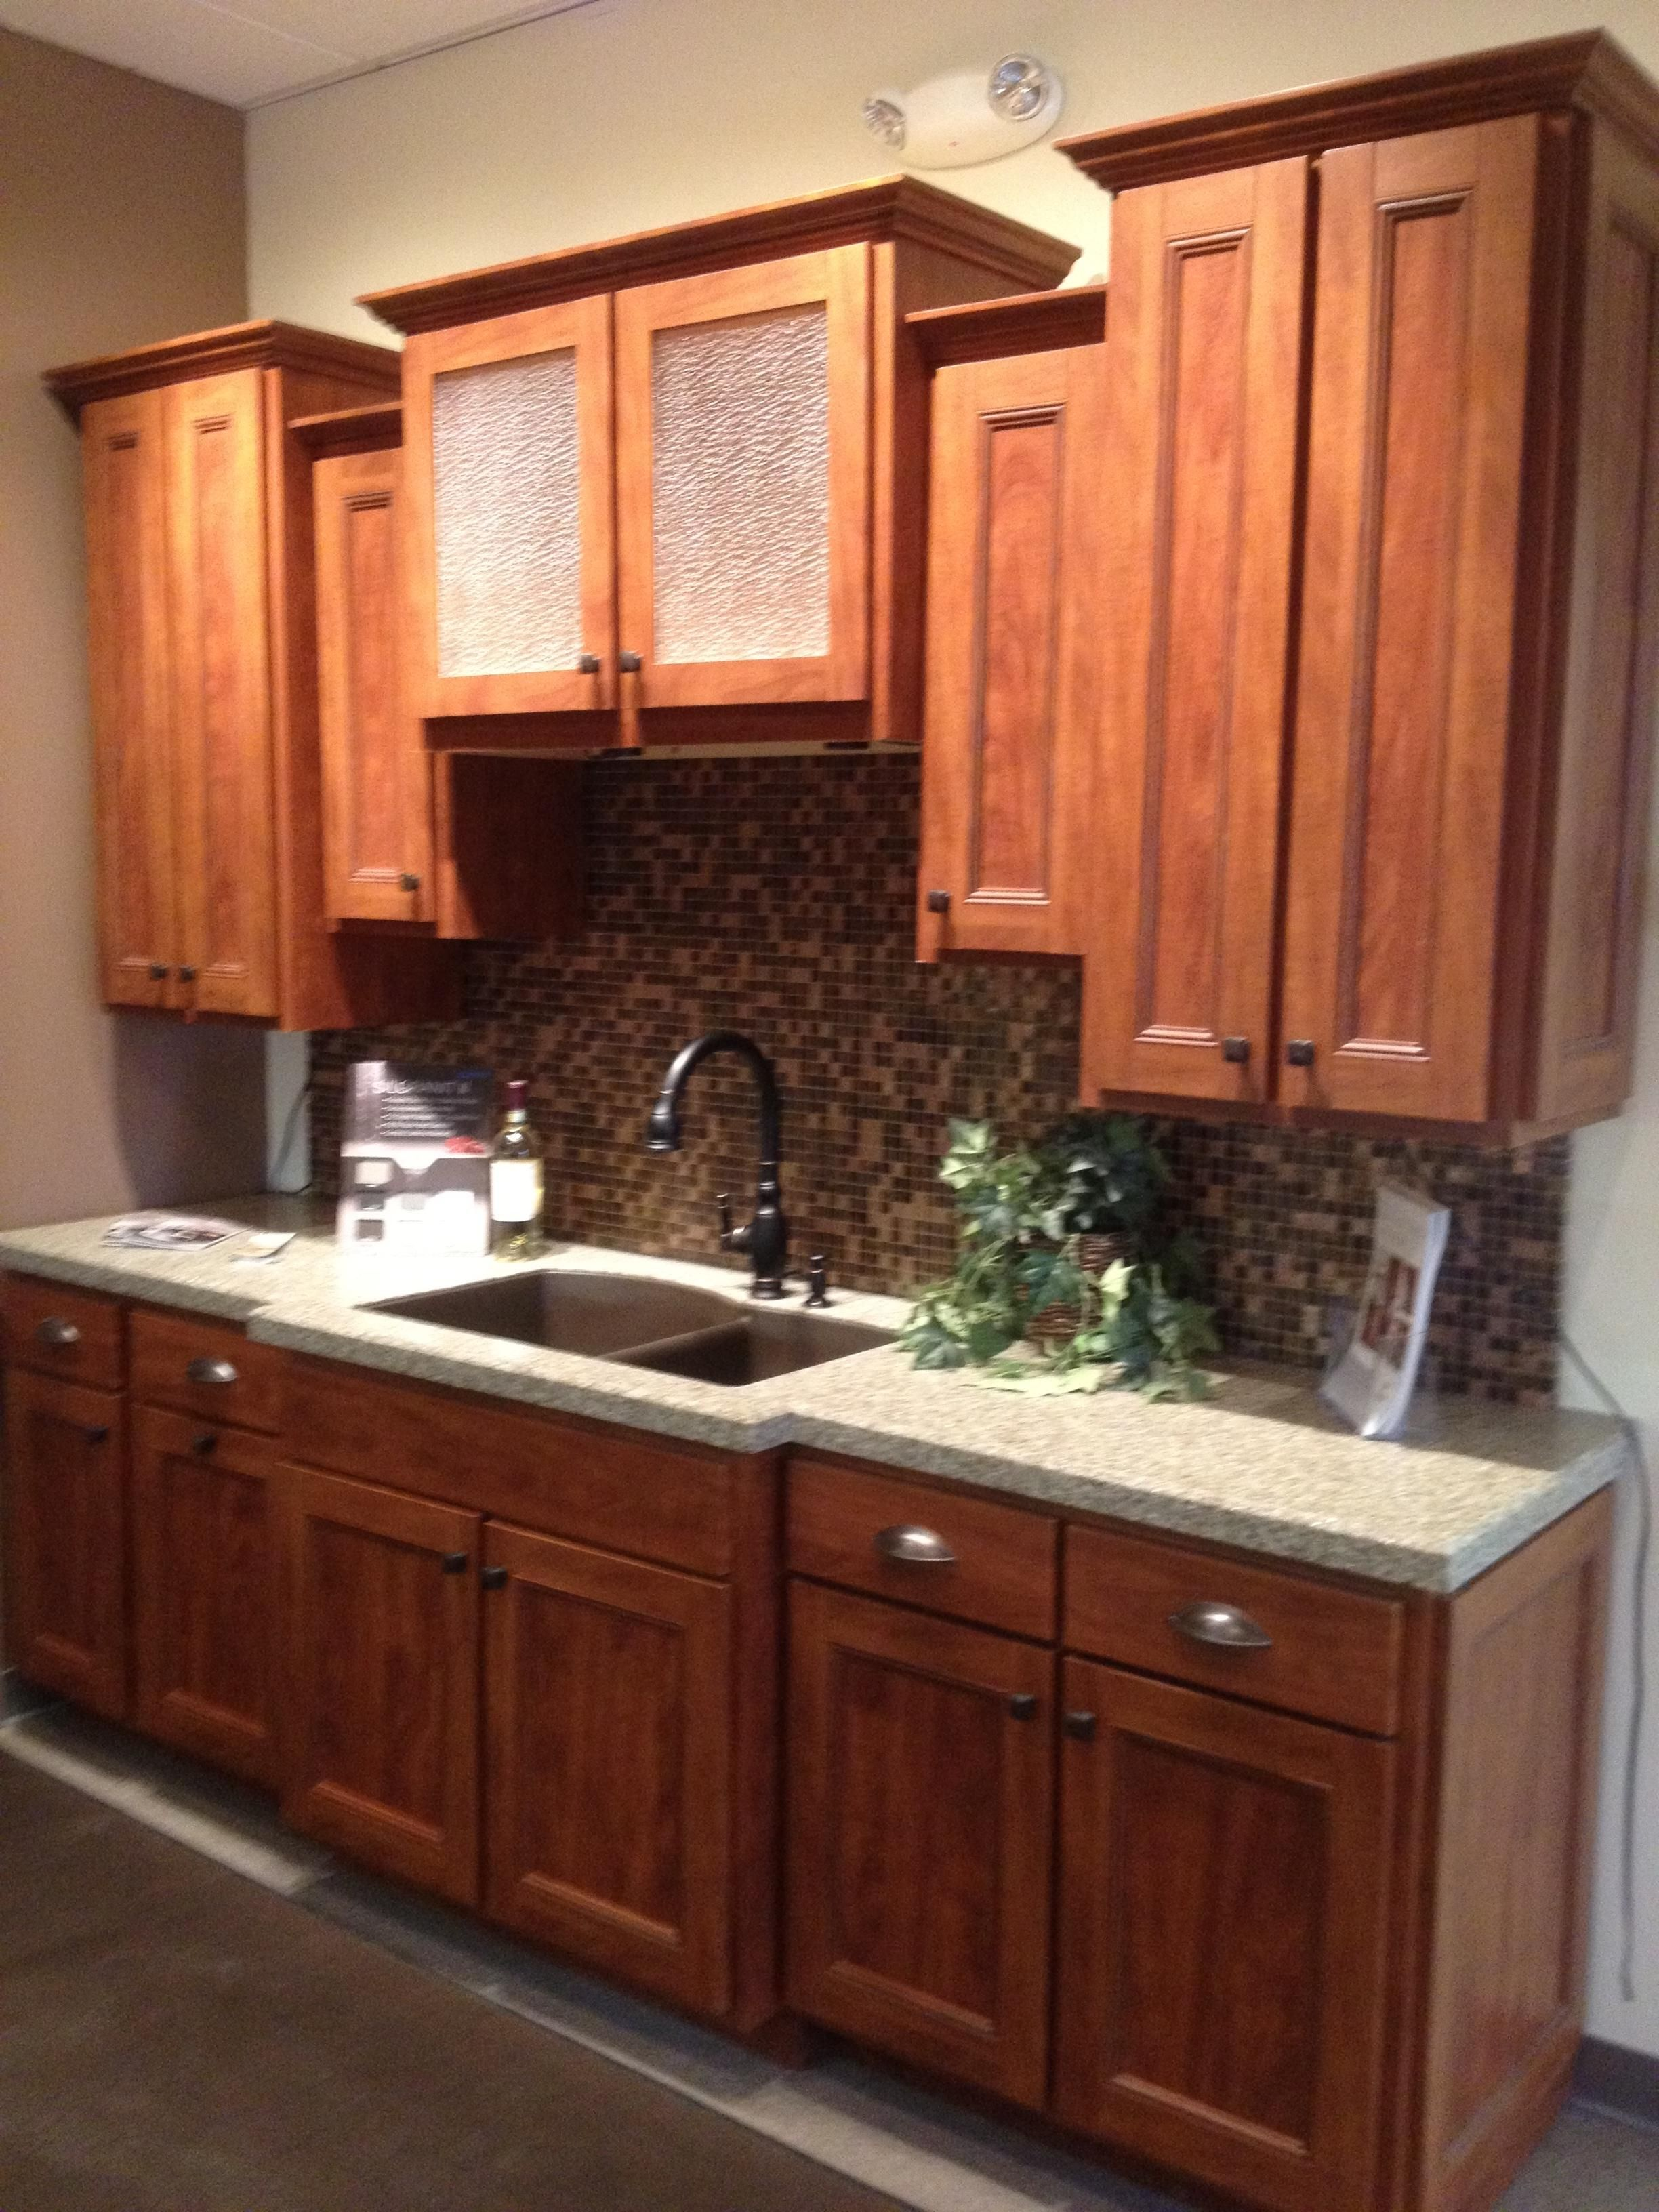 Update Your Cabinets With Cabinet Refacing And Your Countertops With Our  Granite Overlay, No Maintenance Product. Granite Transformations Of St.  Louis ...